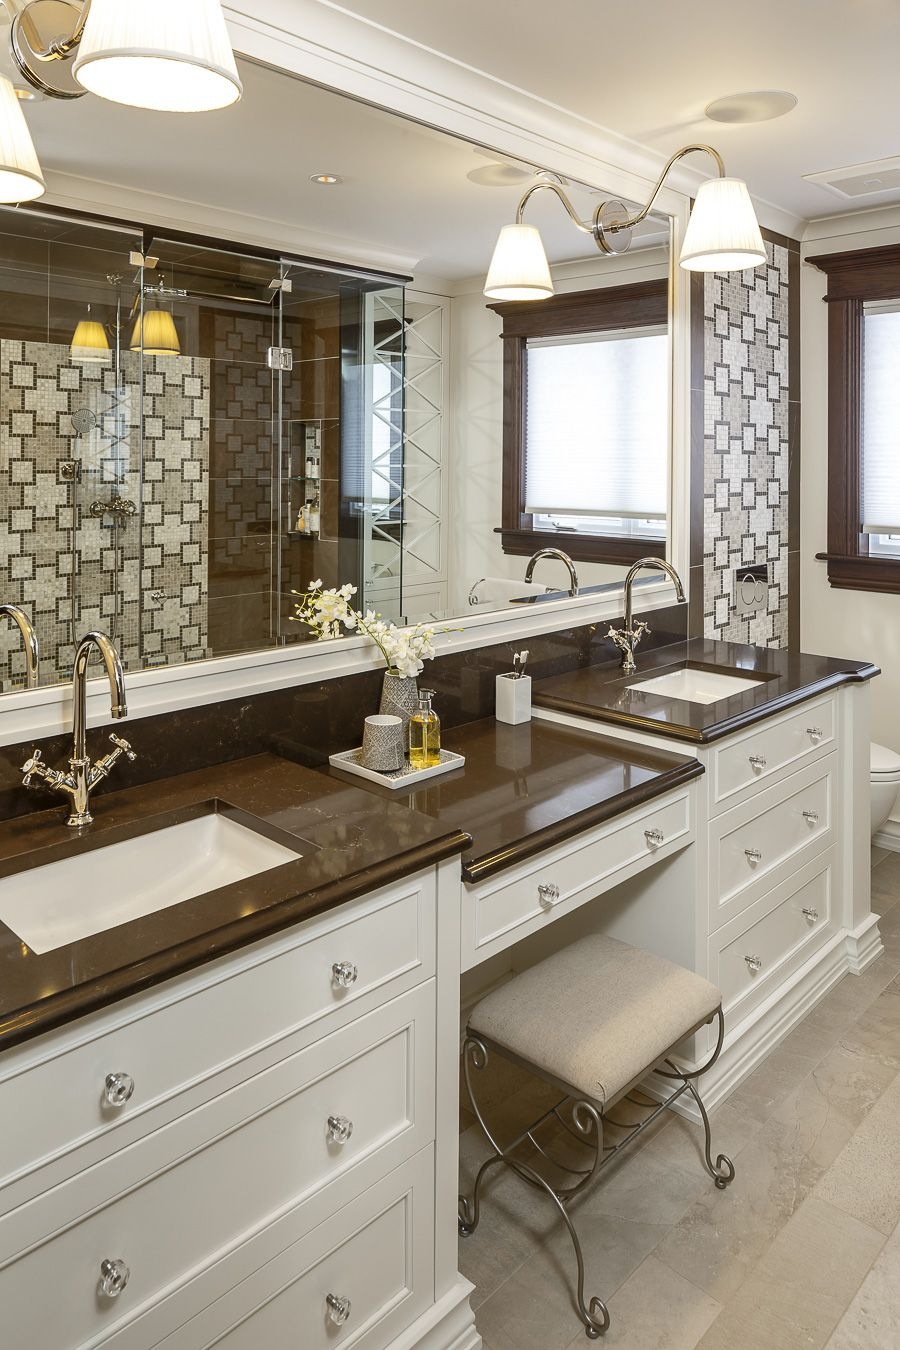 Beautiful And Elegant Bathroomdesignastro Design Centre Enchanting Kitchen Designer Ottawa Inspiration